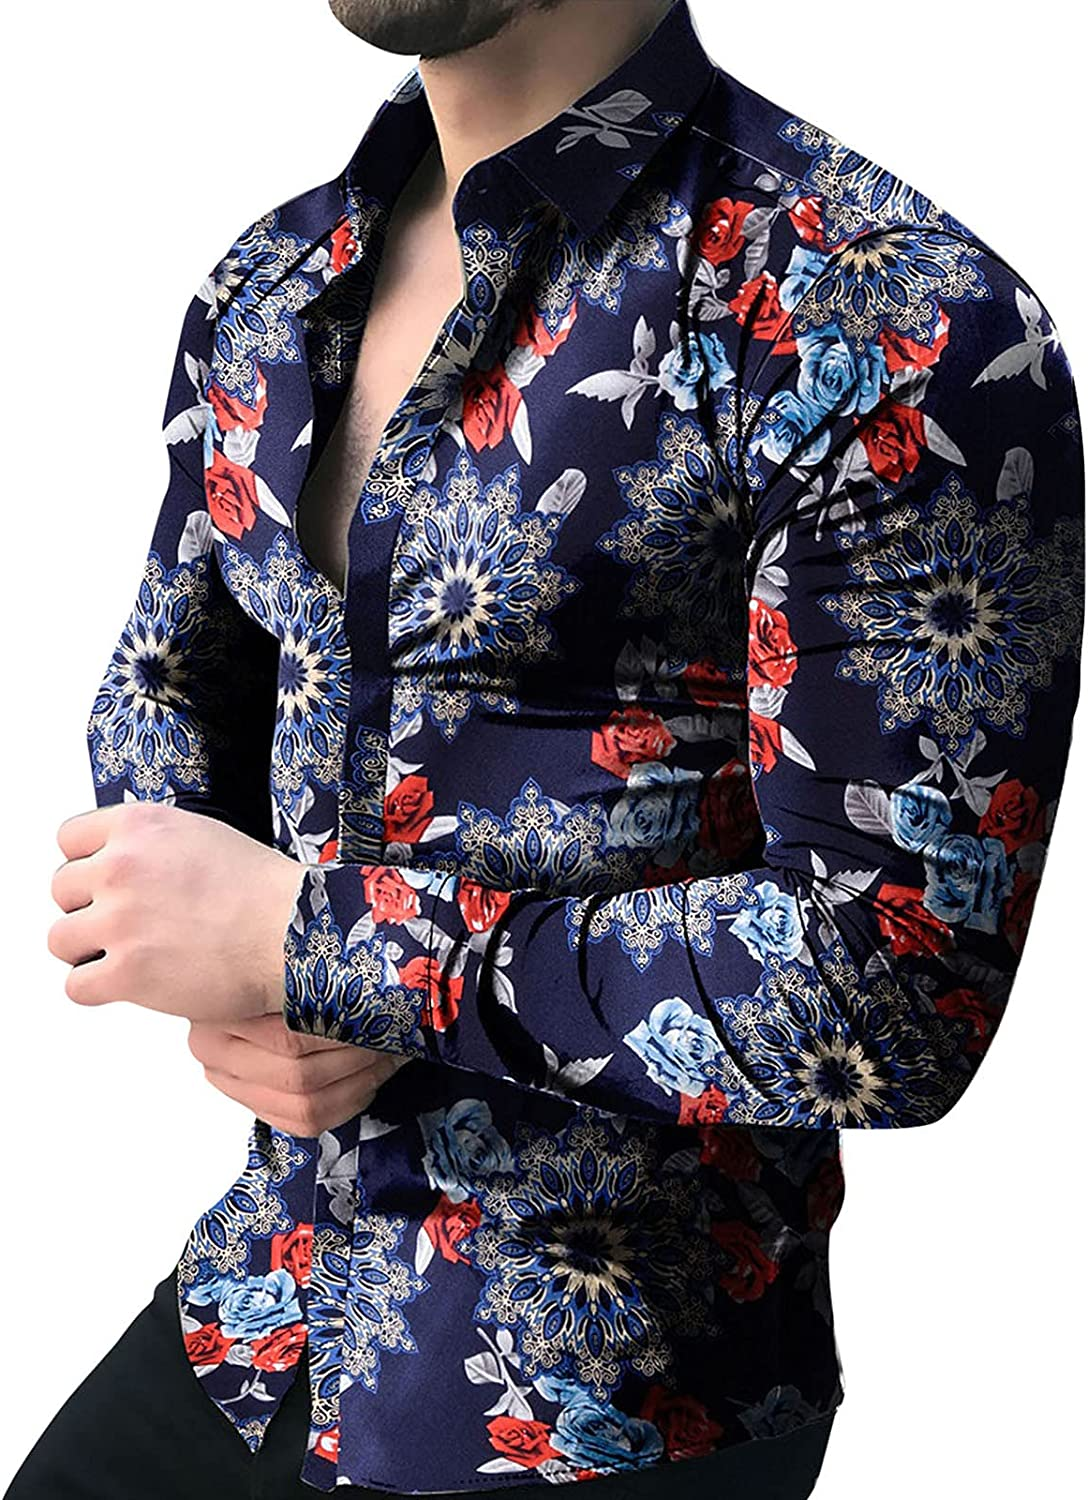 FUNEY Men's Long Sleeve Button Down Shirts Floral Rose Printed Fashion Casual Slim Fit Dress Shirt for Party/Wedding/Shows